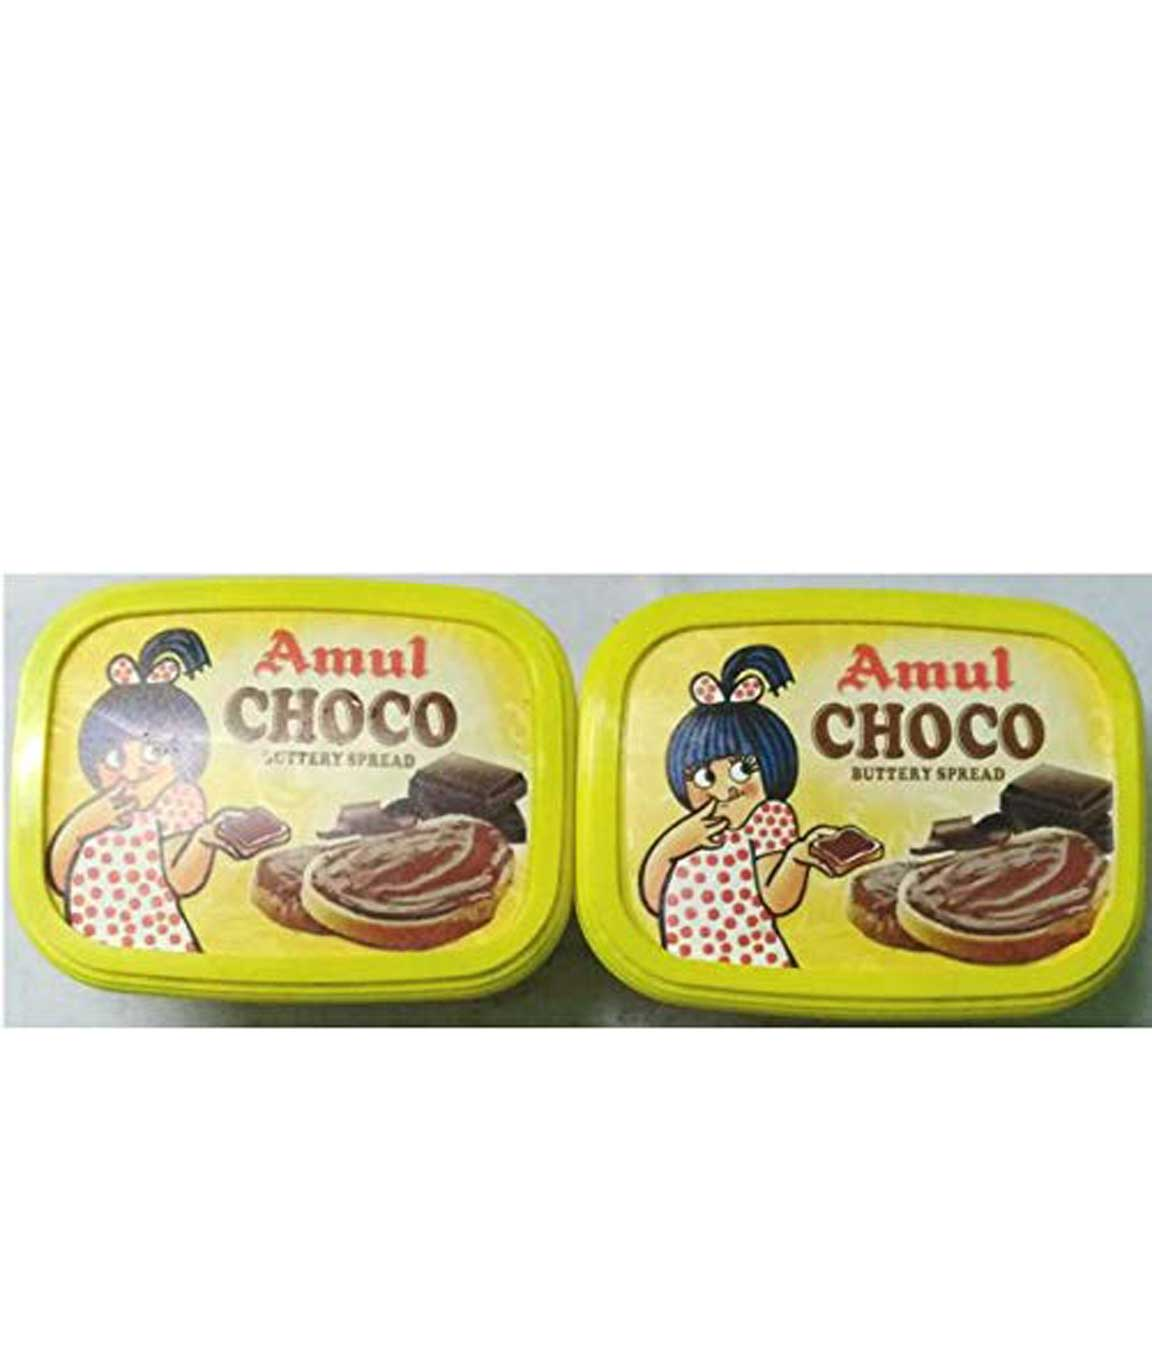 AMUL Choco Buttery Spread 200 GM (Pack of 2)